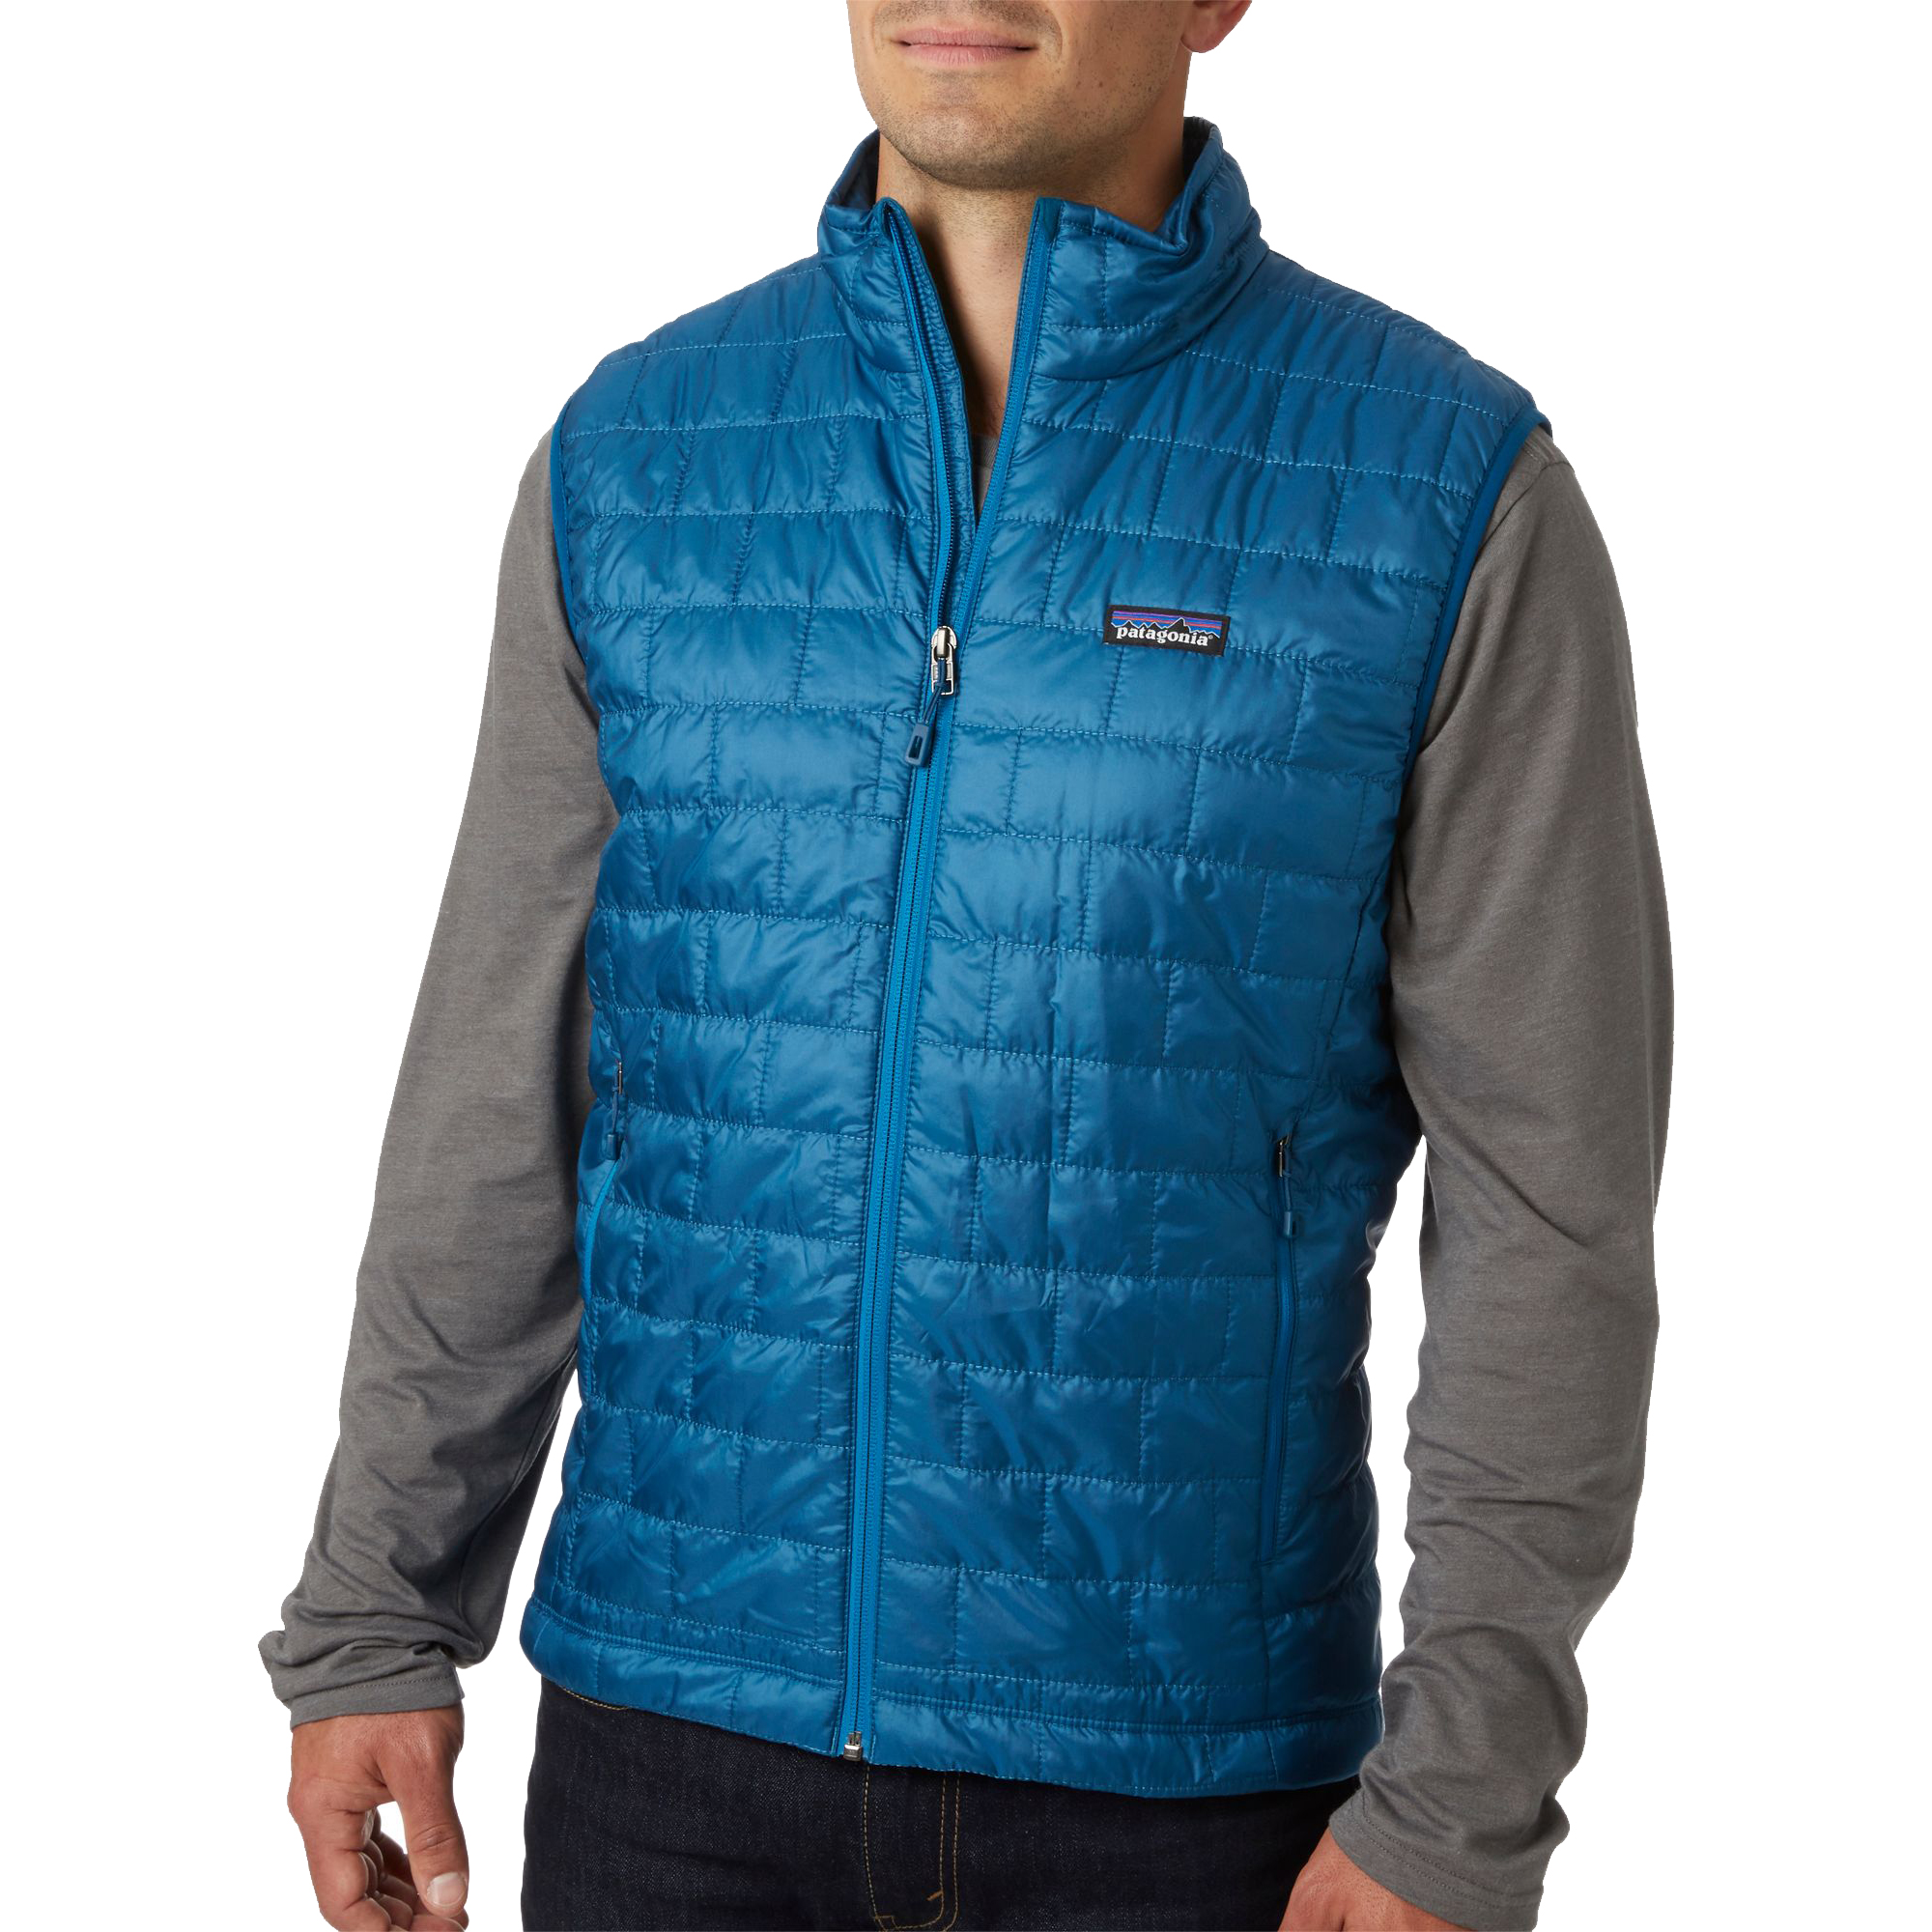 Gifts for Guys: Patagonia Men's Nano Puff Vest